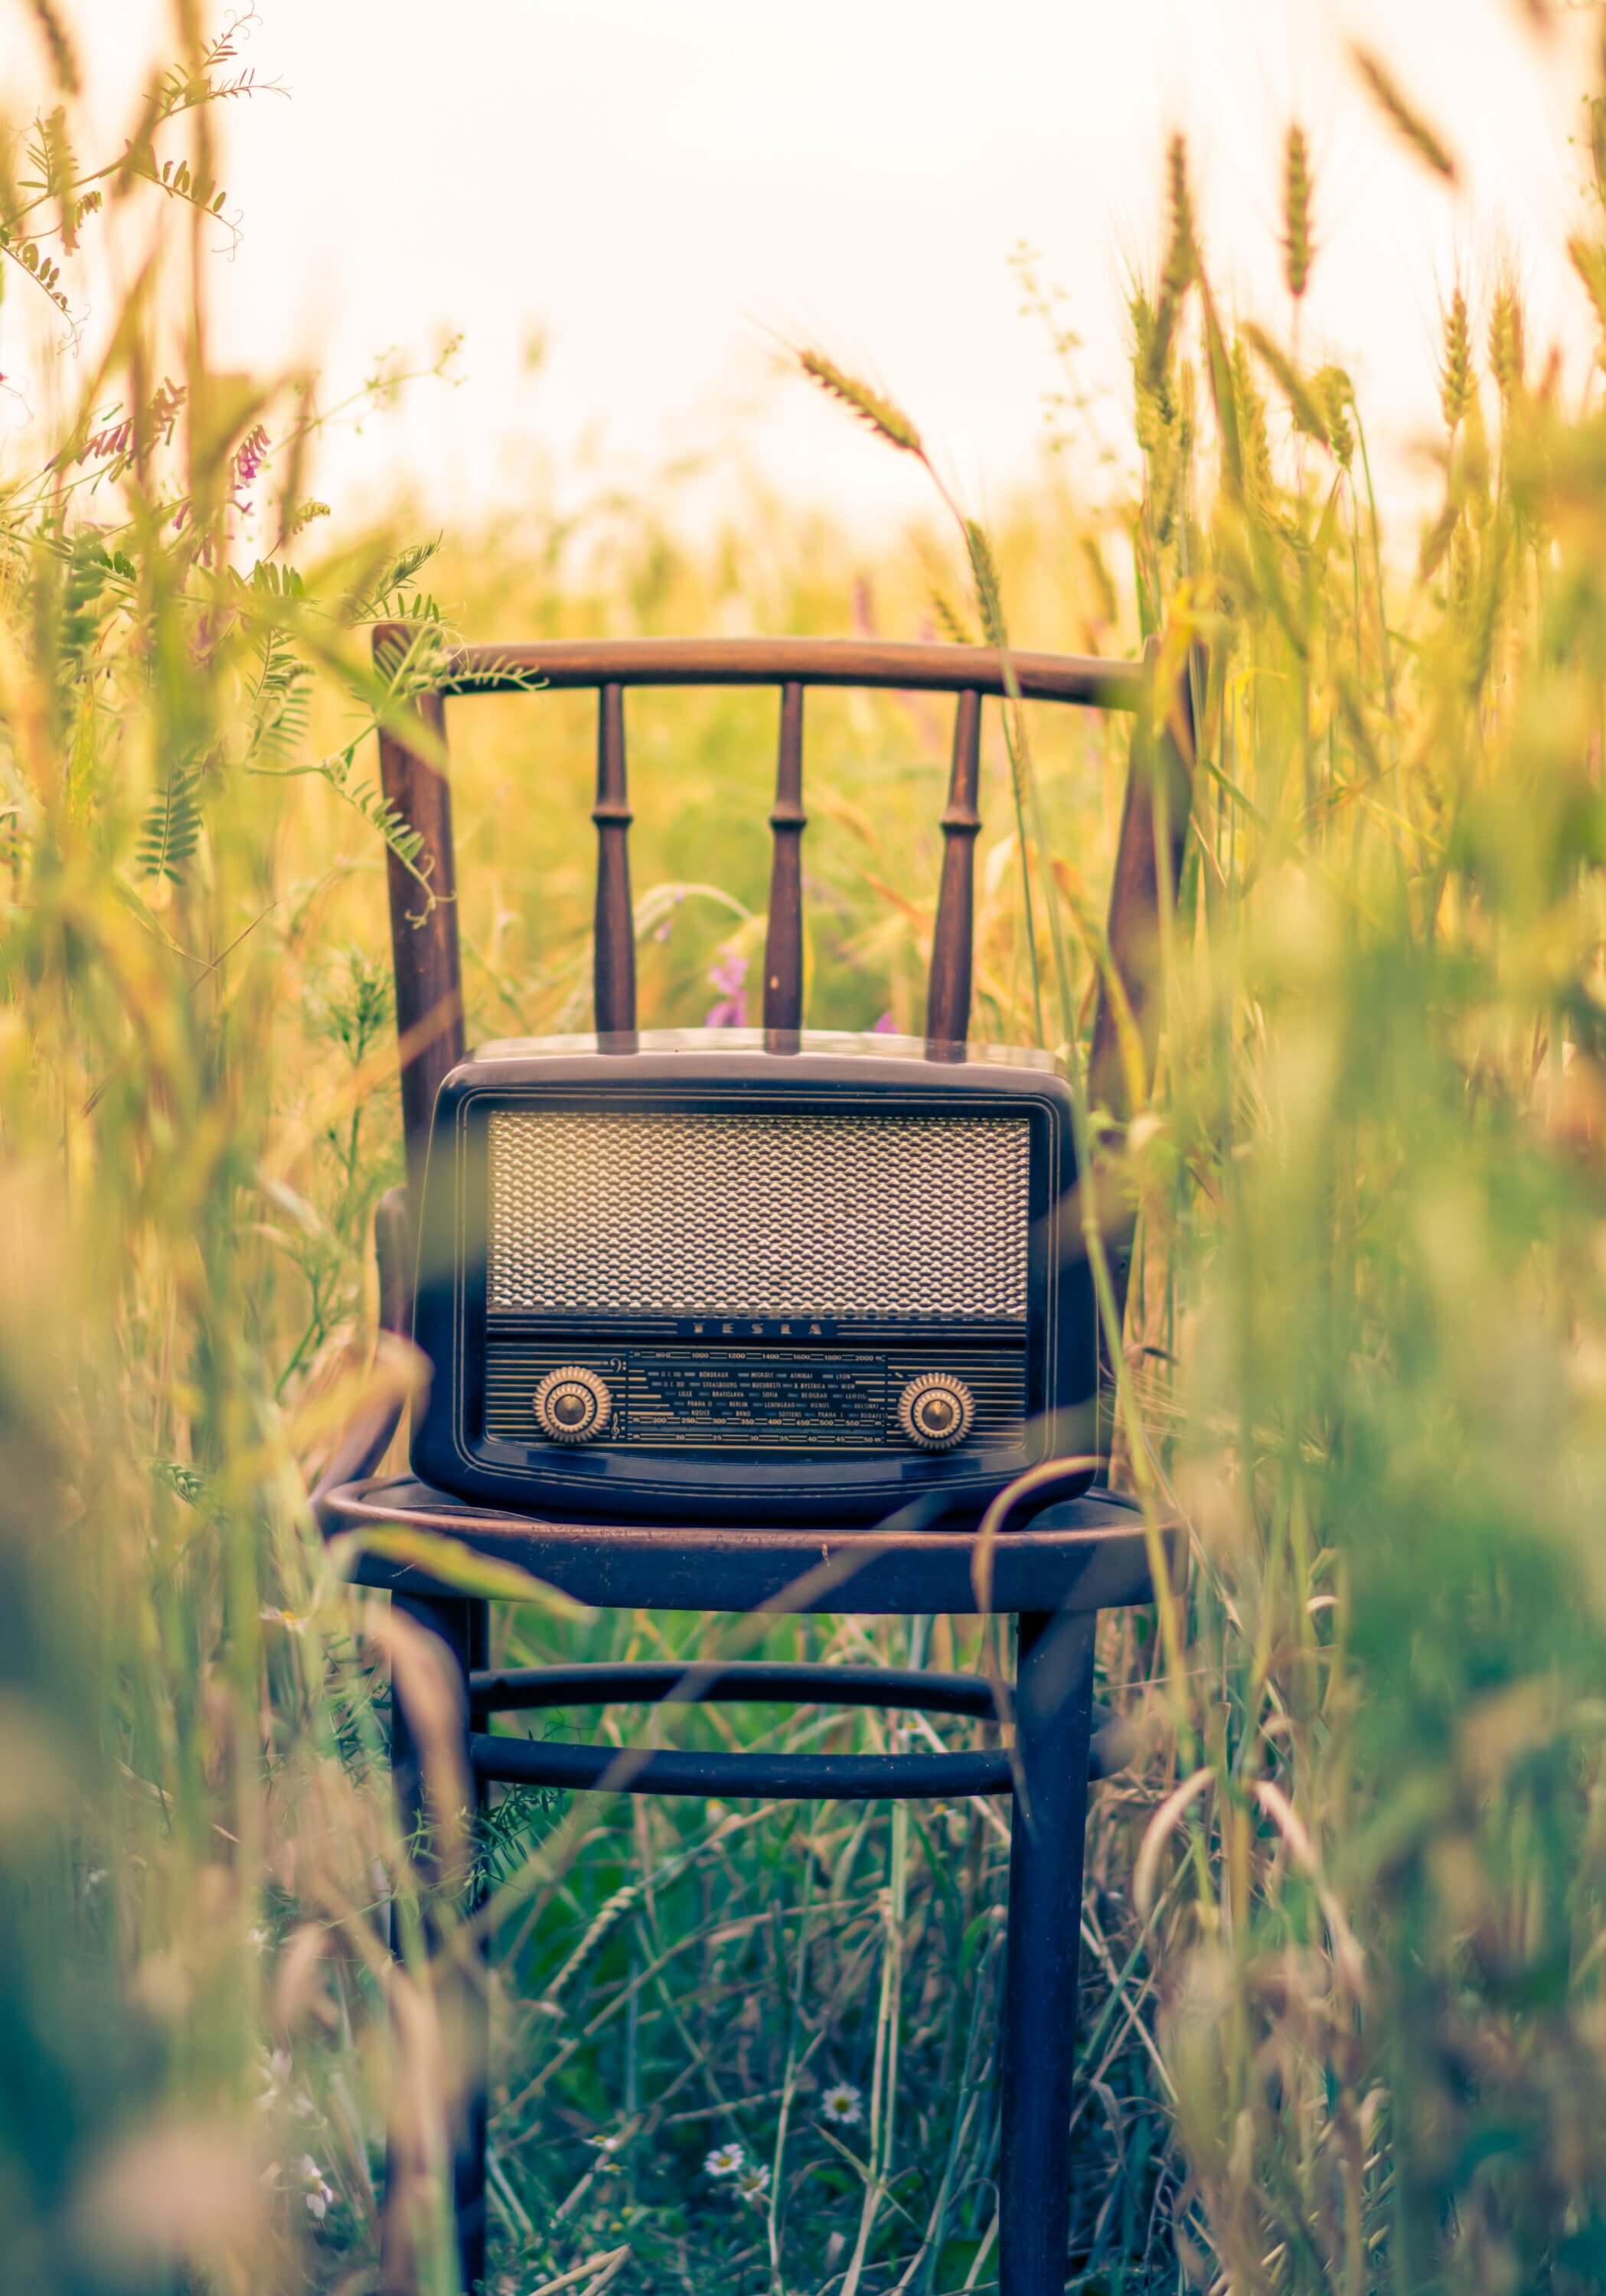 Radio on a chair in a field